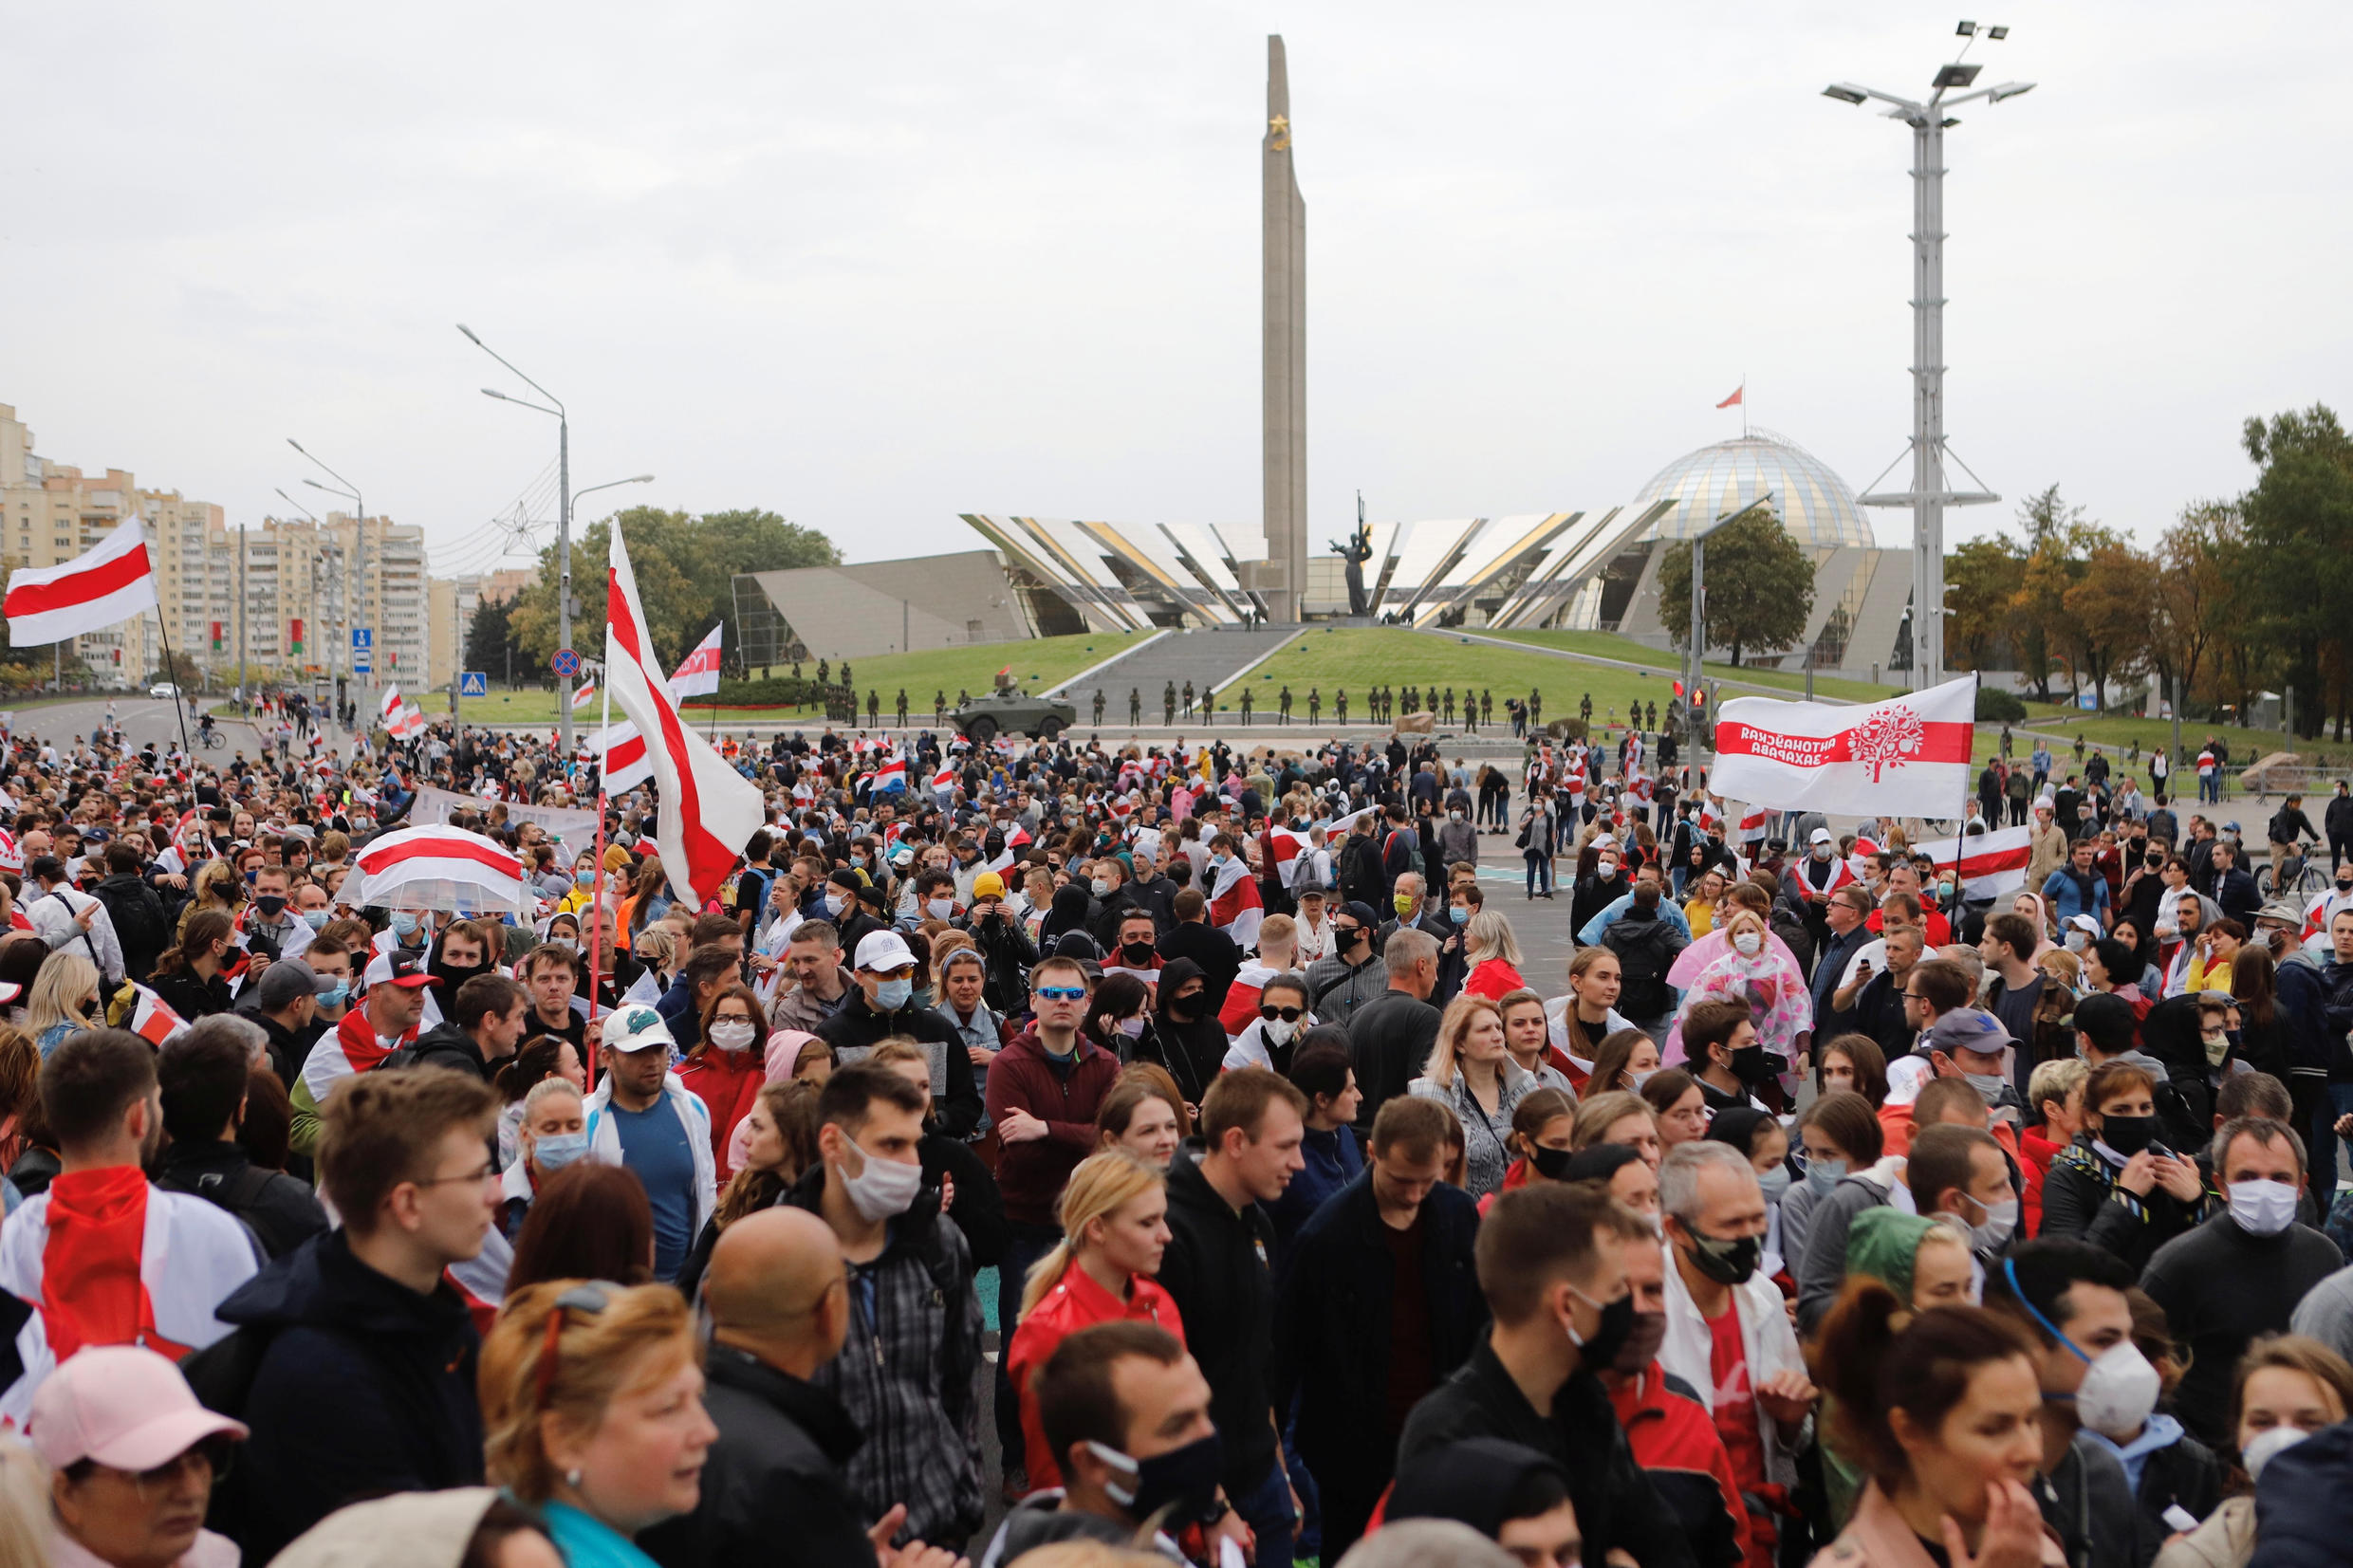 2020-09-27T125826Z_1263787316_RC207J92F9DQ_RTRMADP_3_BELARUS-ELECTION-PROTESTS